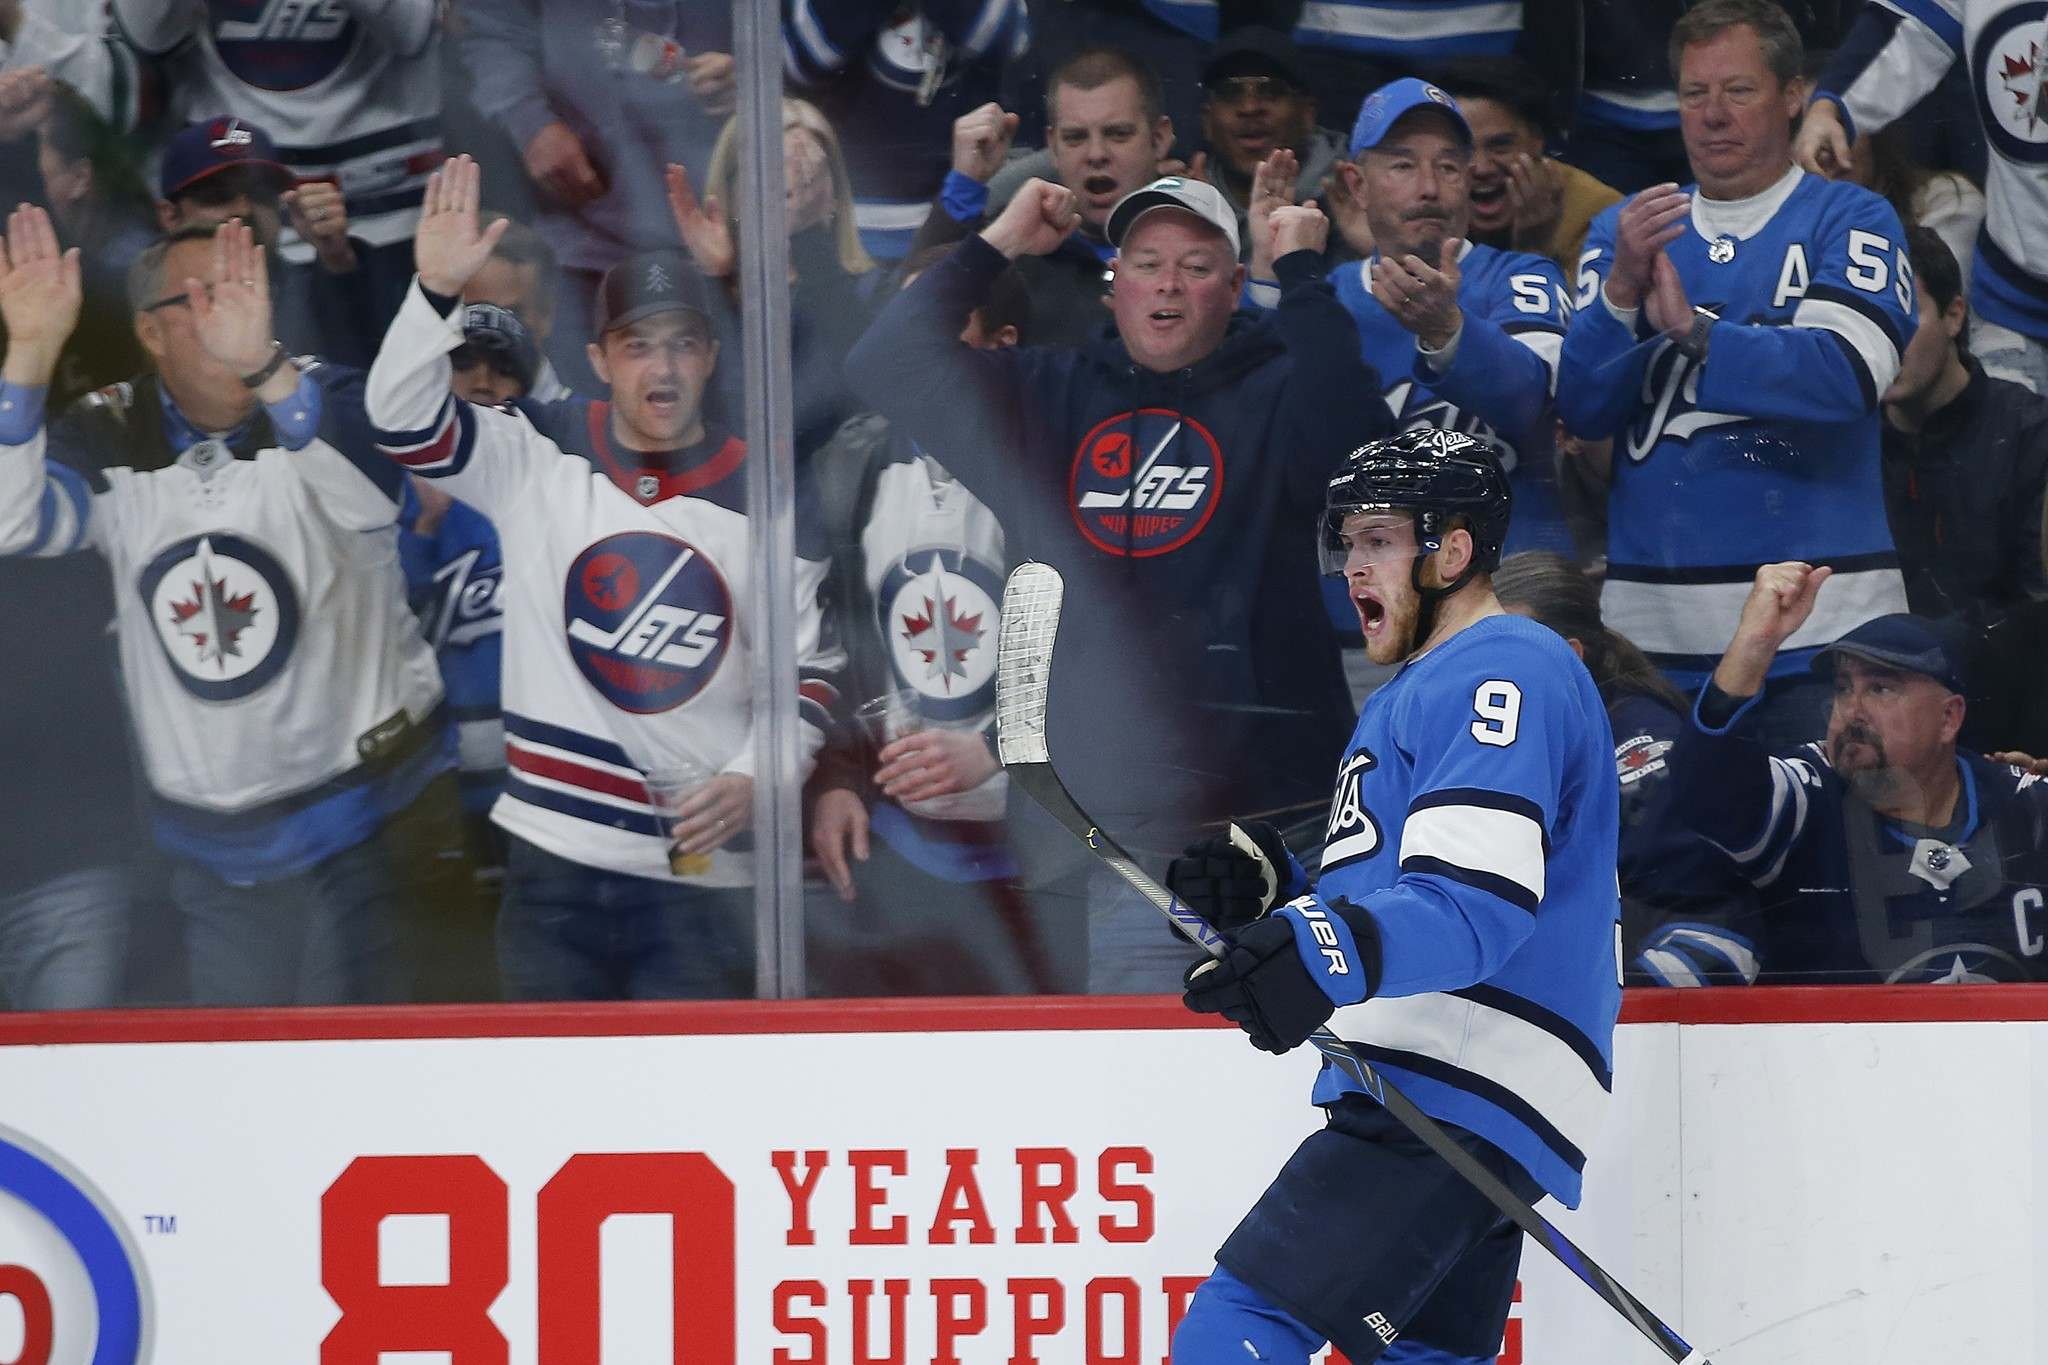 """THE CANADIAN PRESS/John Woods</p><p>Winnipeg Jets' Andrew Copp on his team's recent success: """"I come to the rink thinking that we're going to win every game.""""</p>"""